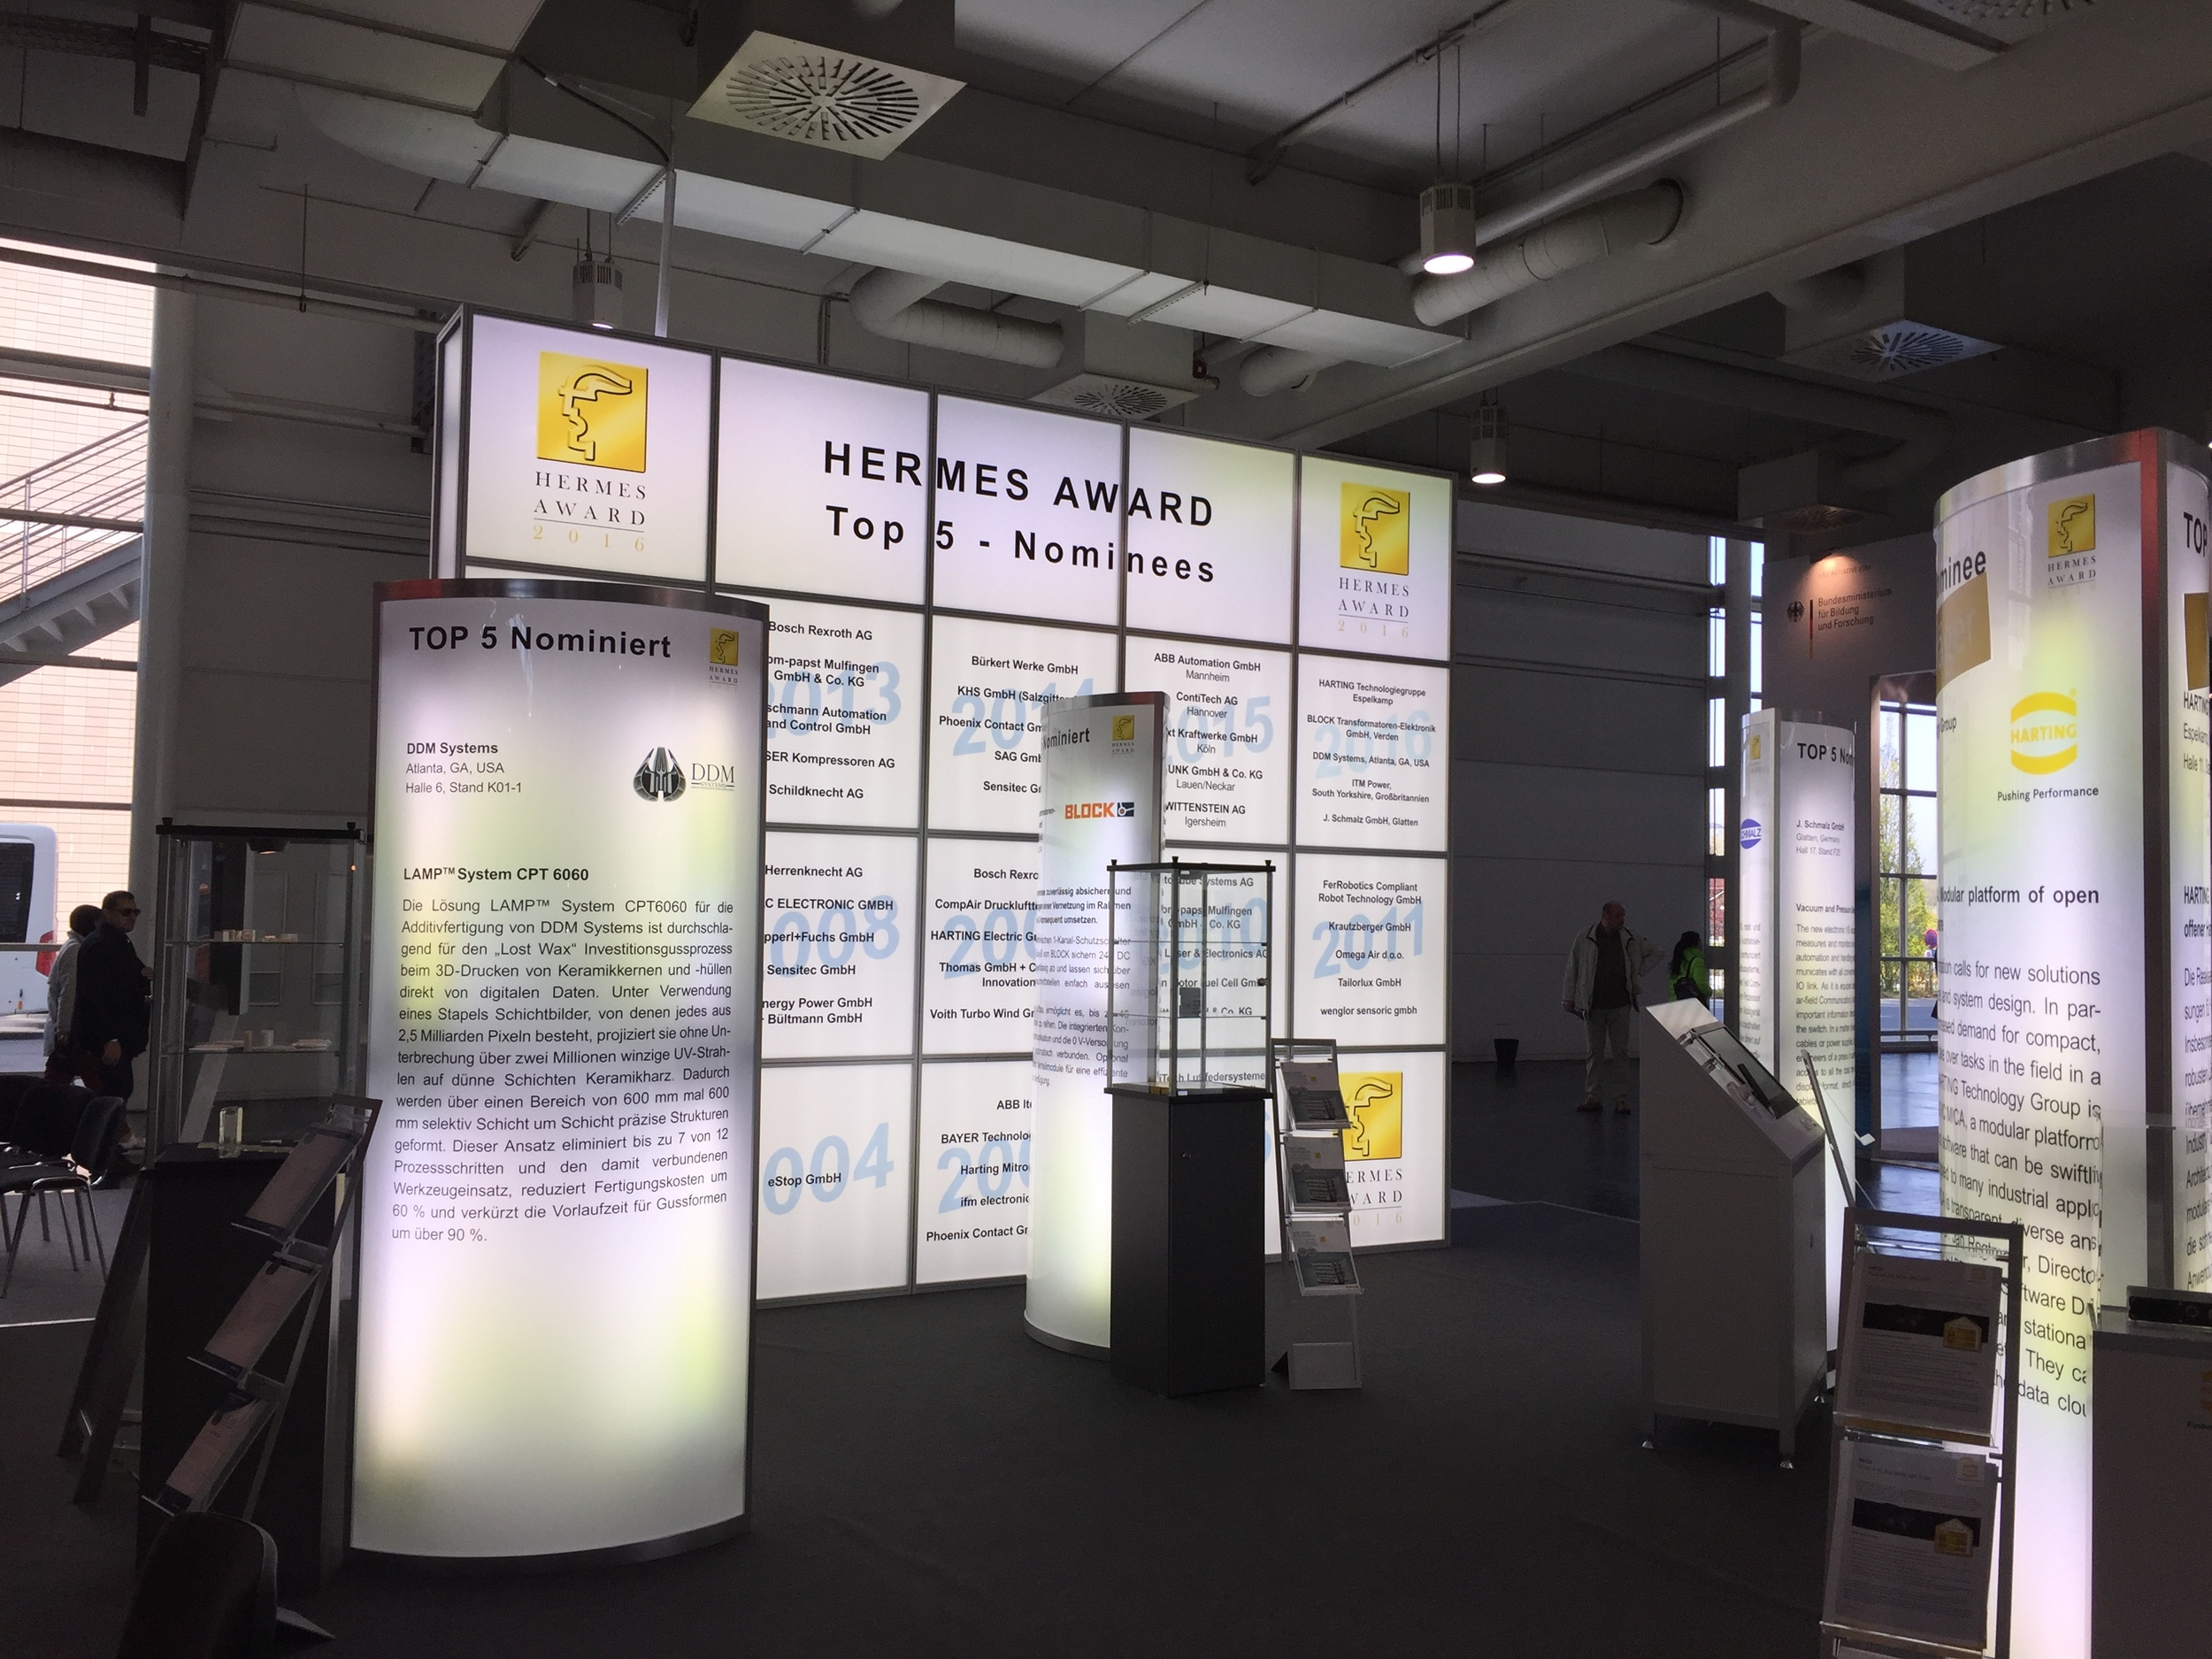 HERMES Award Exhibit Area in Pavilion 3 of the 2016 Hannover Messe